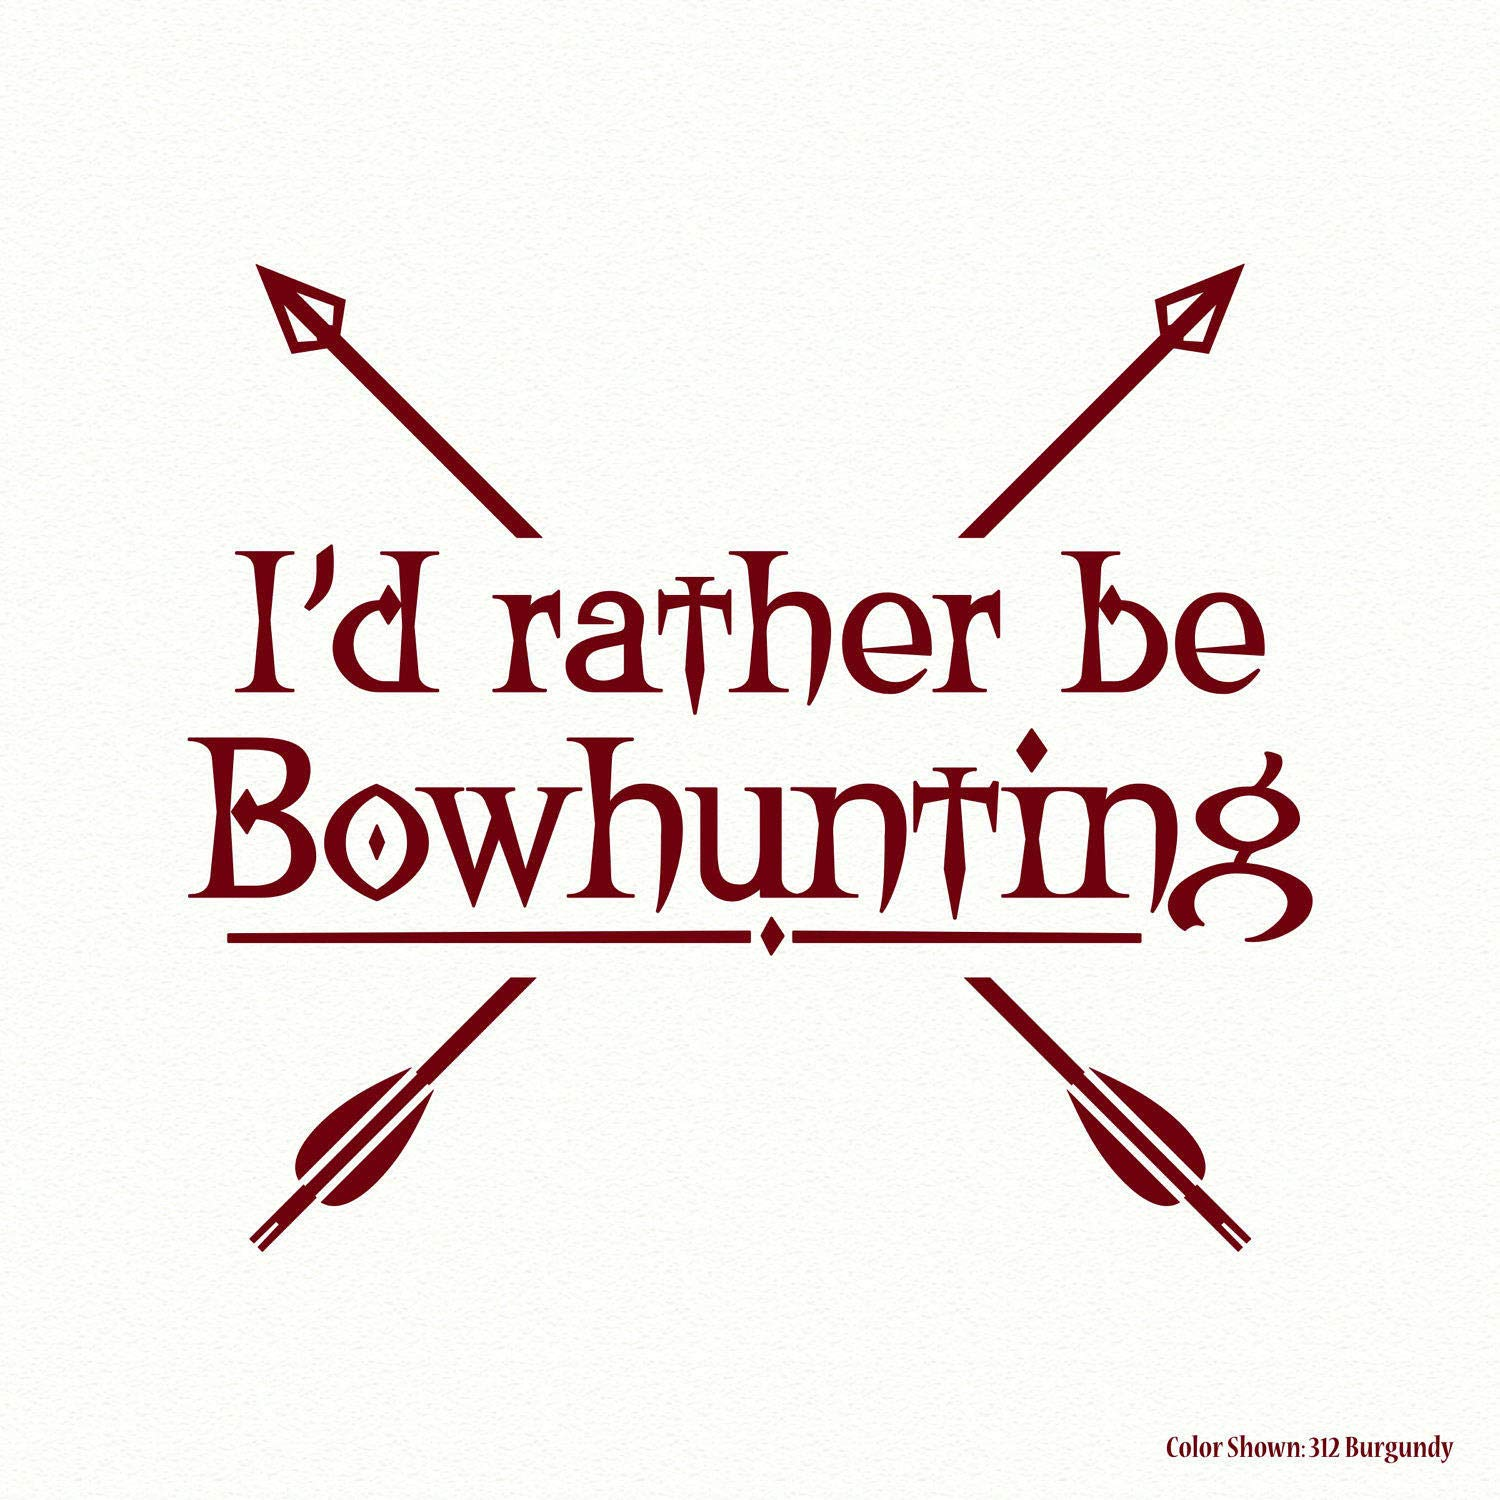 Amazon.com: chengdar732 Id rather be Bowhunting hunting ...